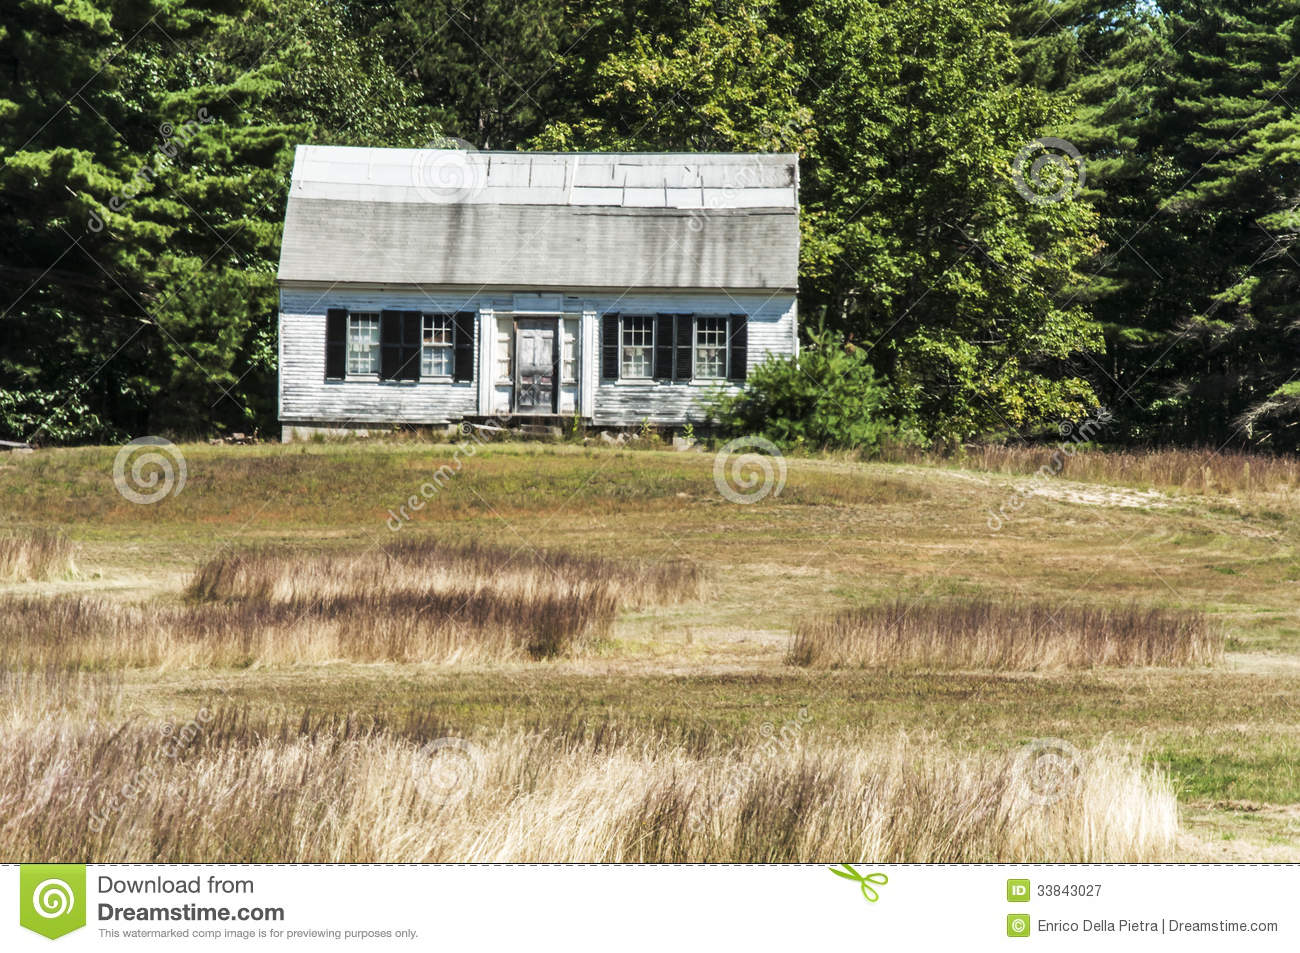 Country house royalty free stock photography image 33843027 for Country house online